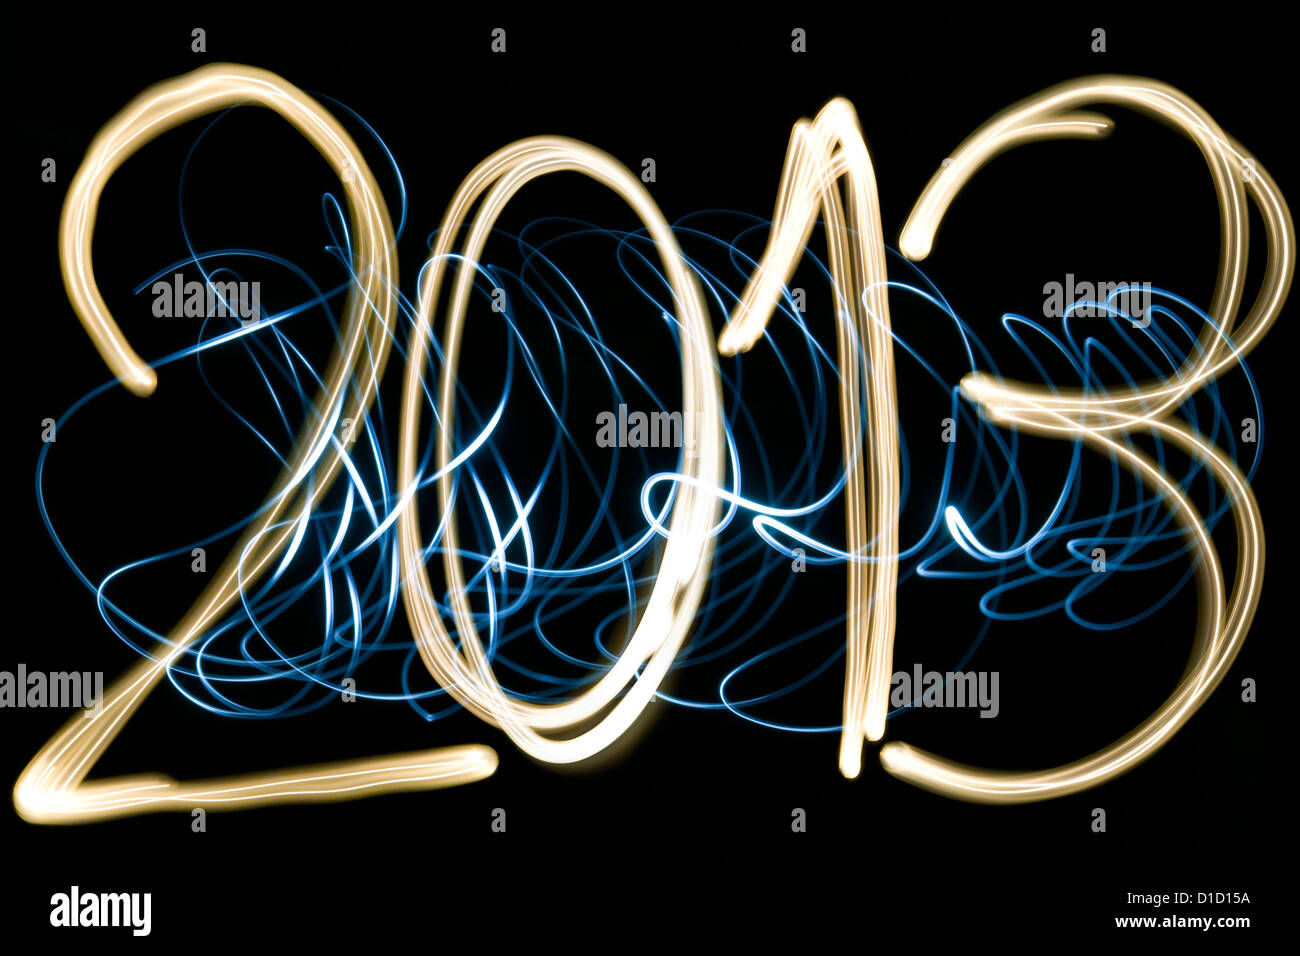 light painting new year 2013 - Stock Image